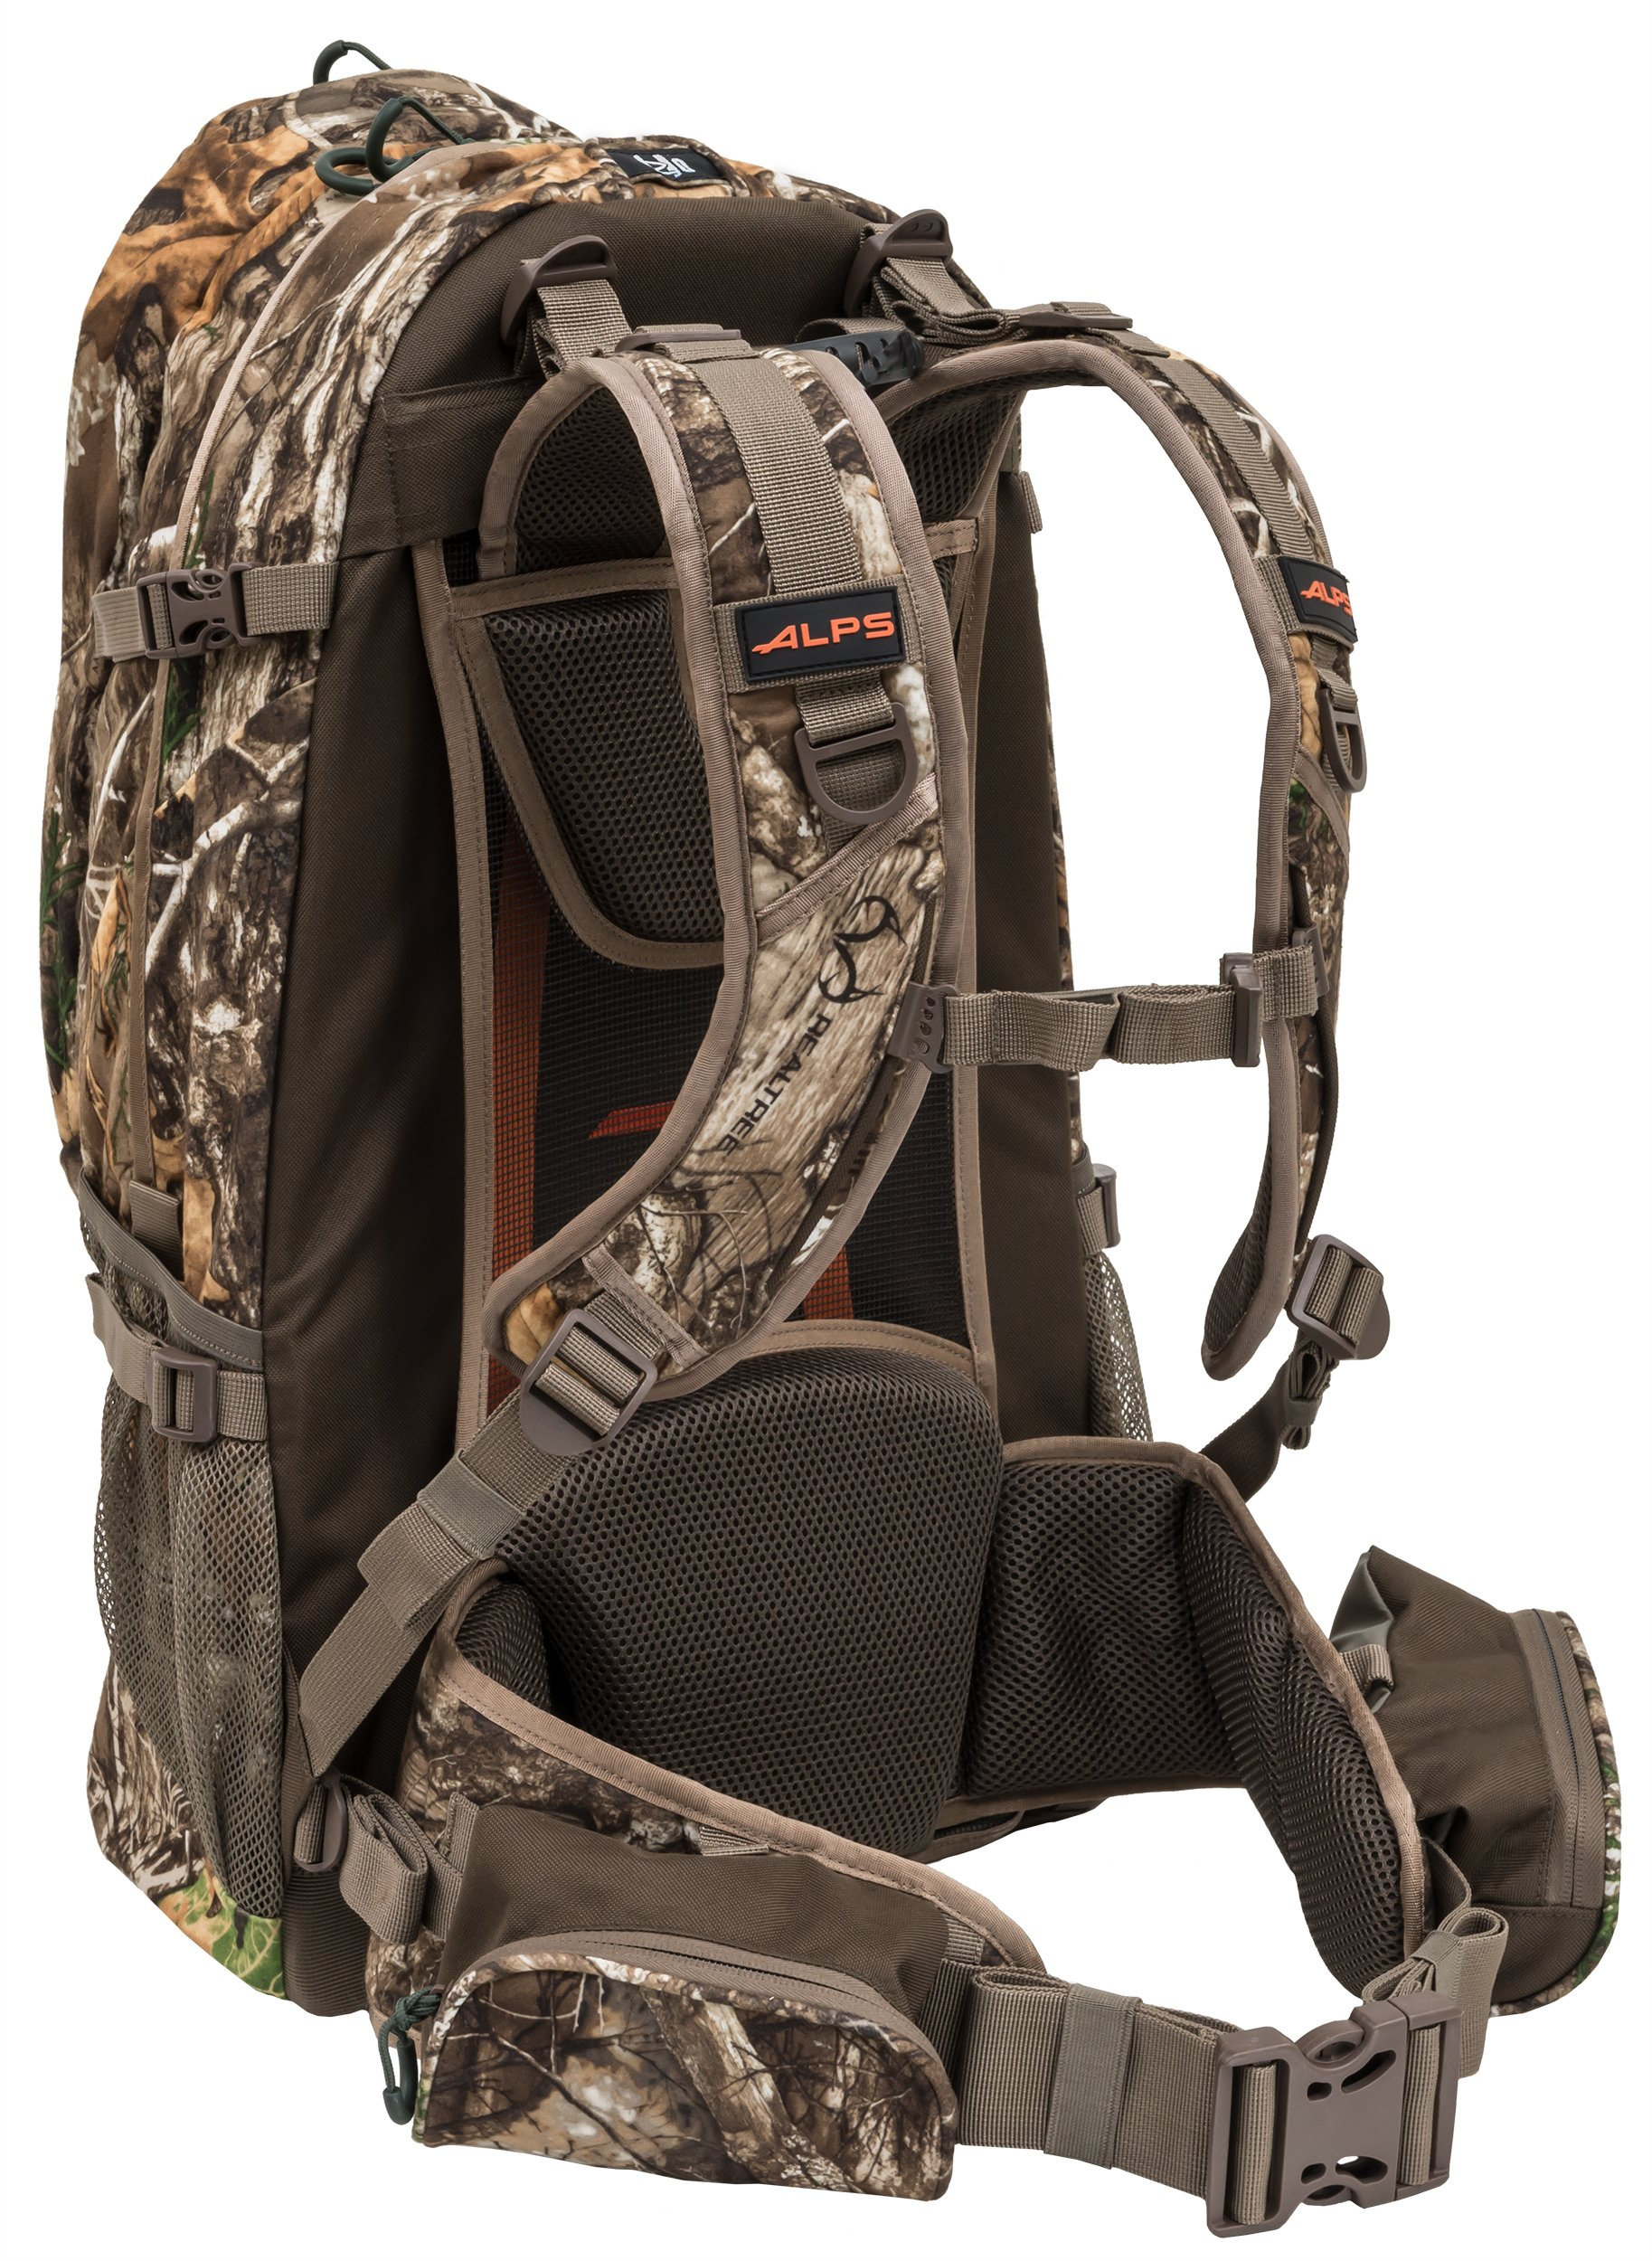 ALPS OutdoorZ Falcon Hunting Pack by ALPS OutdoorZ (Image #2)